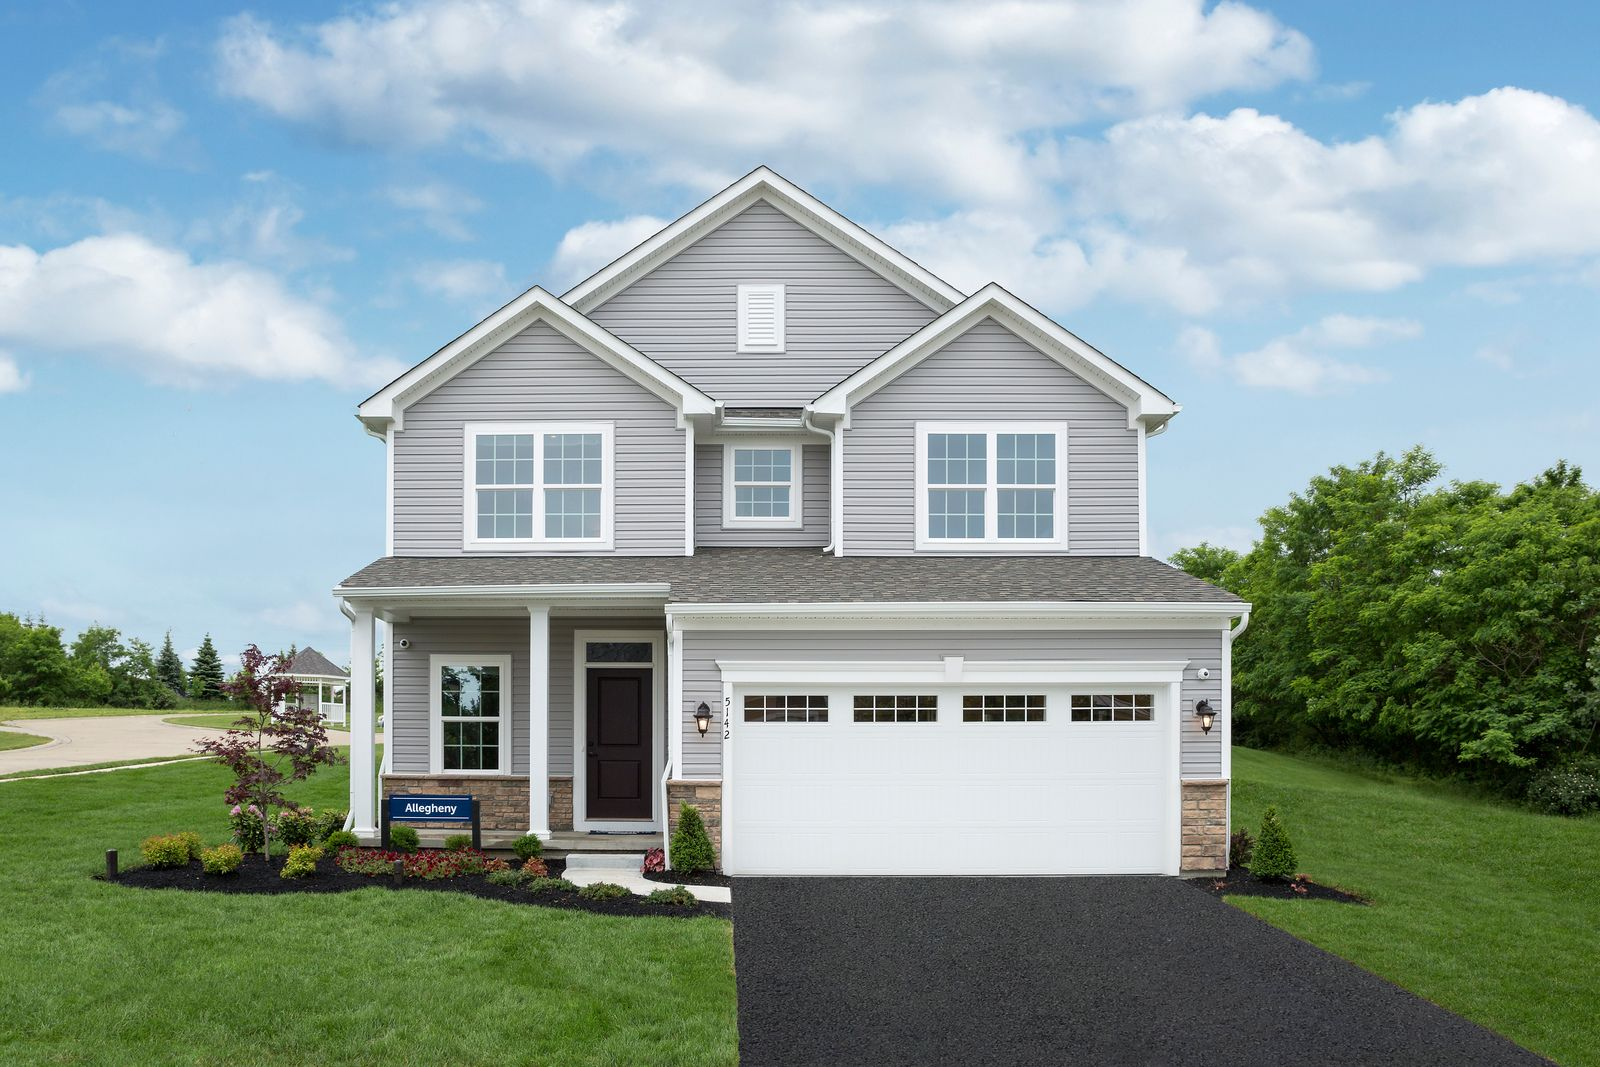 Welcome to Kennedy Pines:The only new single-family homes in Montour Schools, off of I-79 & only 15 minutes from Pittsburgh. Only a total of 41 homesites.Click here toschedule an appointment.